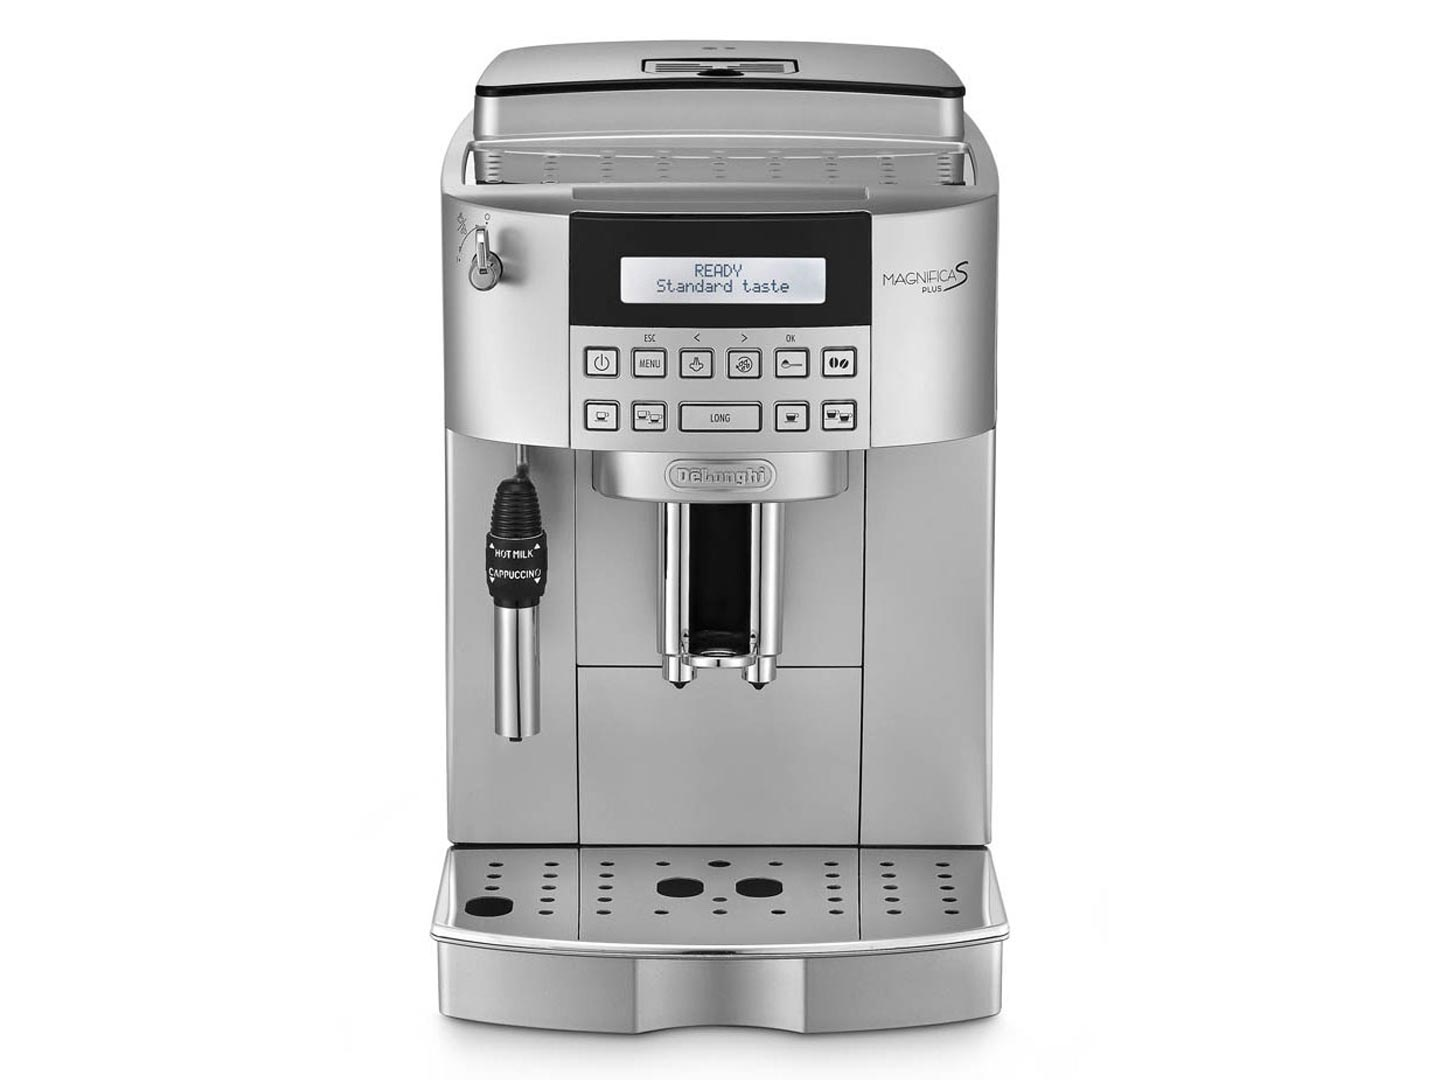 Kenwood_(Delonghi) 342152322 ECAM 22320SB front buy delonghi magnifica s ecam 22 320 sb bean to cup coffee machine  at bayanpartner.co